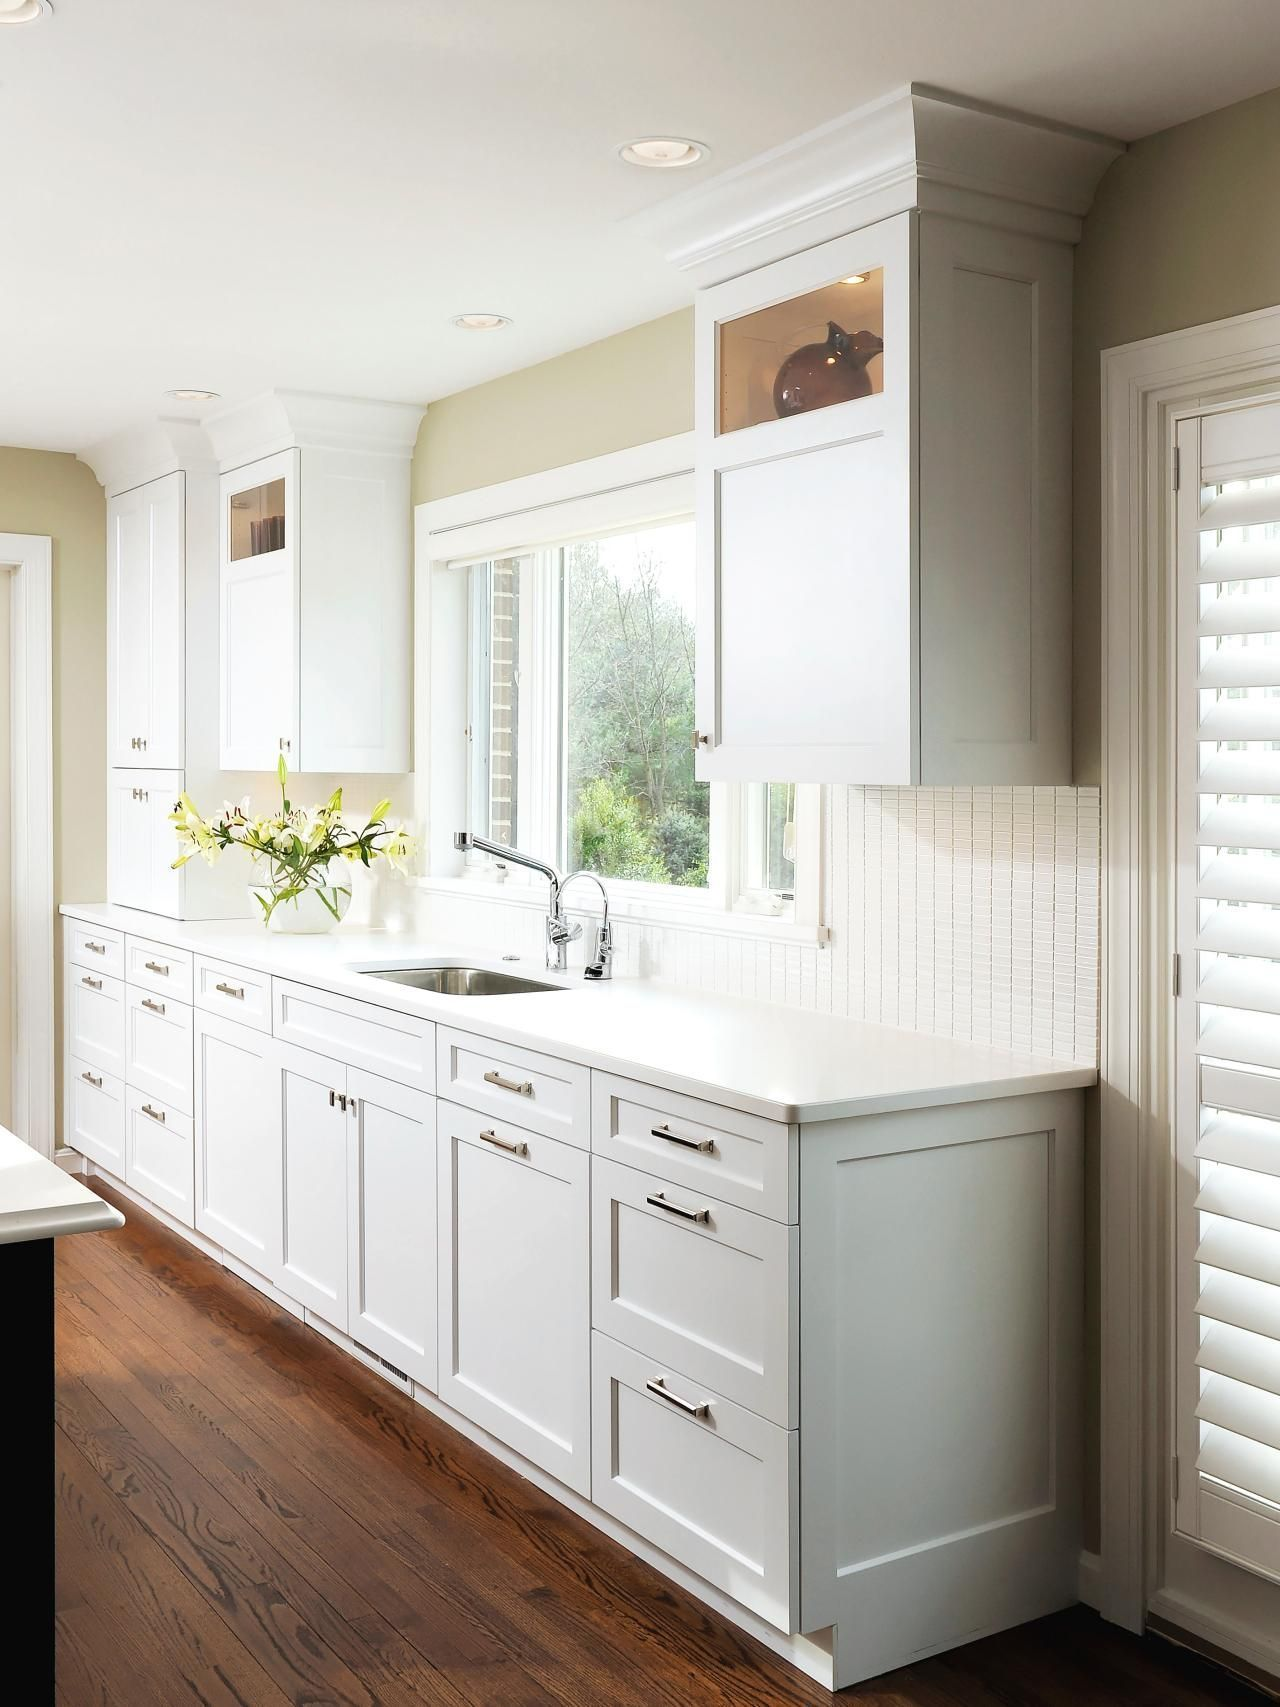 Everything About Painted Kitchen Cabinet Ideas Diy Two Tone Rustic Dark Gr Shaker Style Kitchen Cabinets Kitchen Cabinet Inspiration Kitchen Cabinet Styles